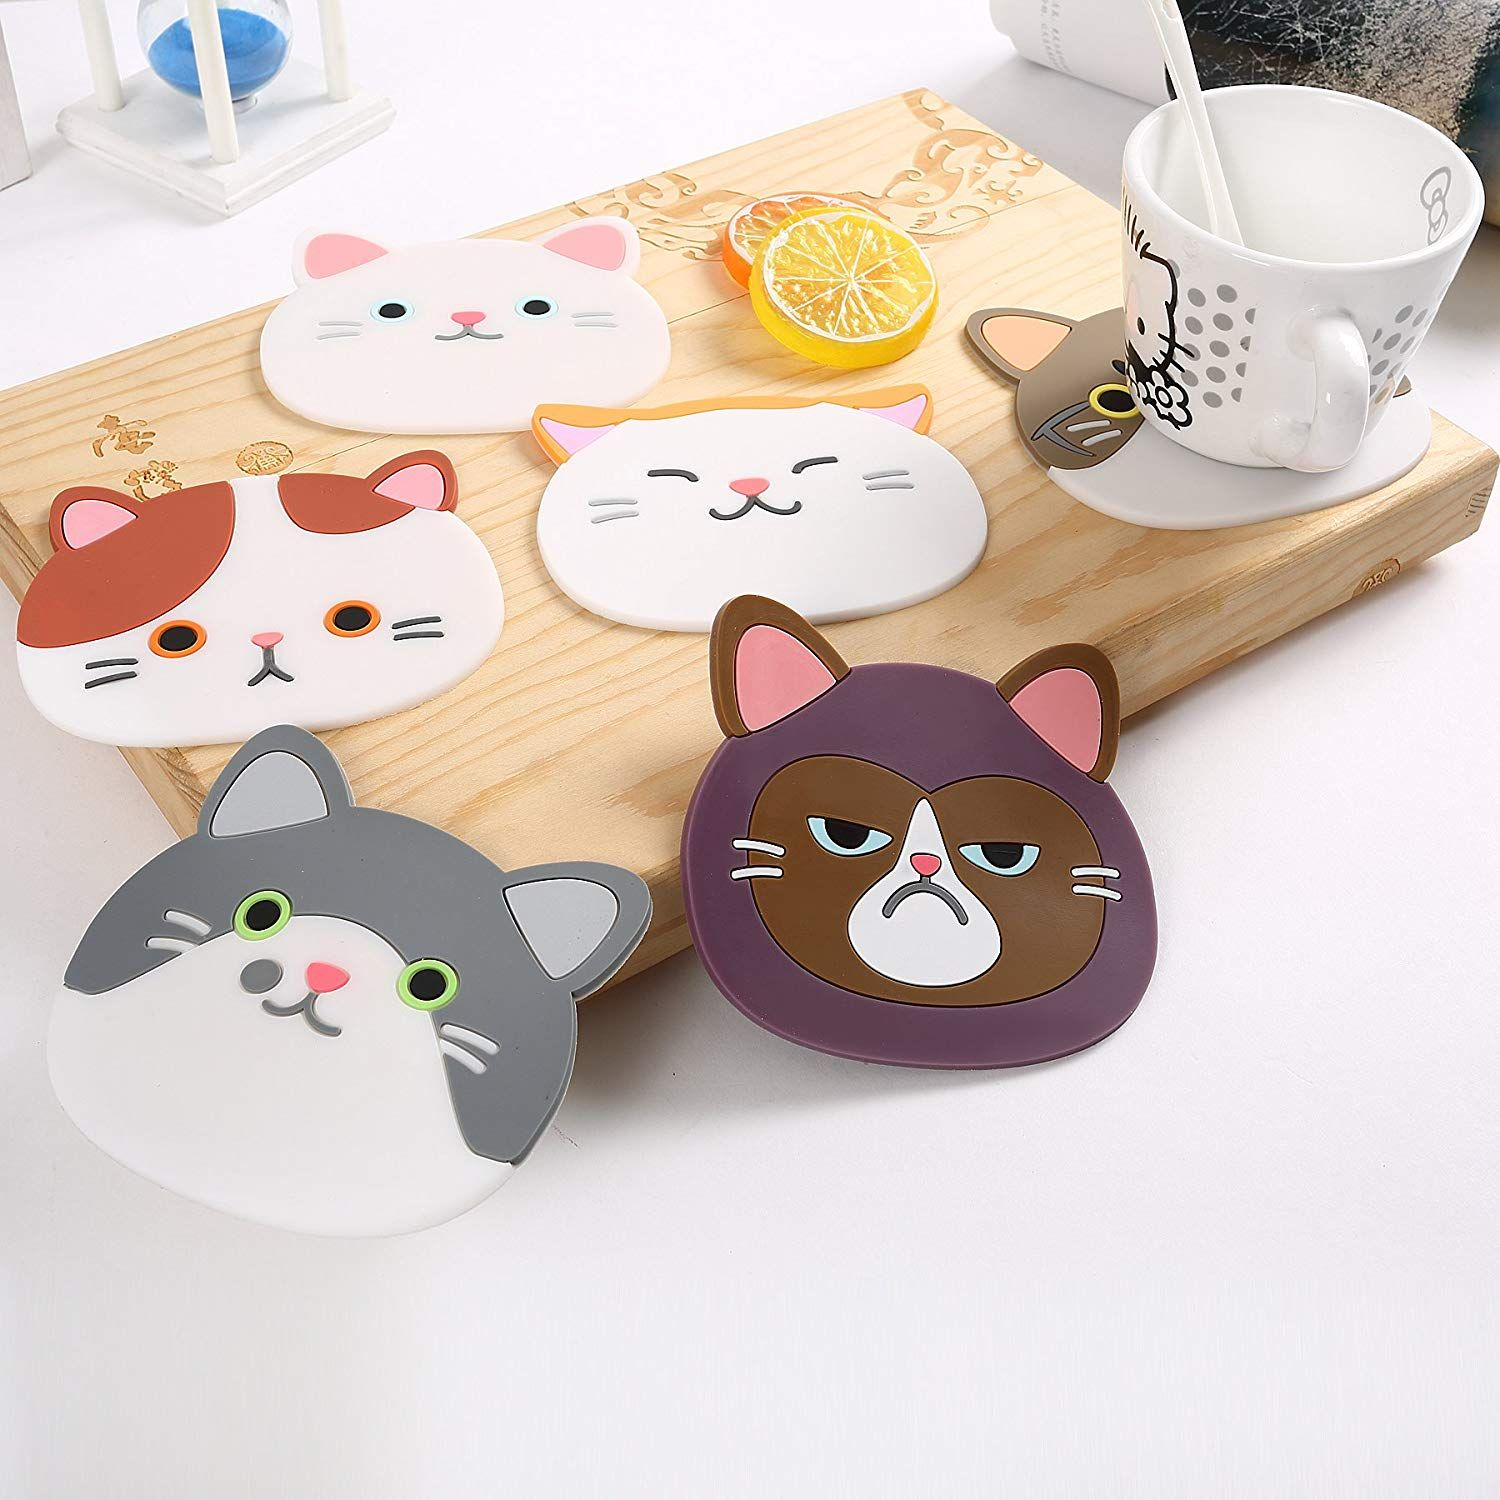 Efivs Arts Qute Cat Cup Mat Silicone Rubber Coaster for